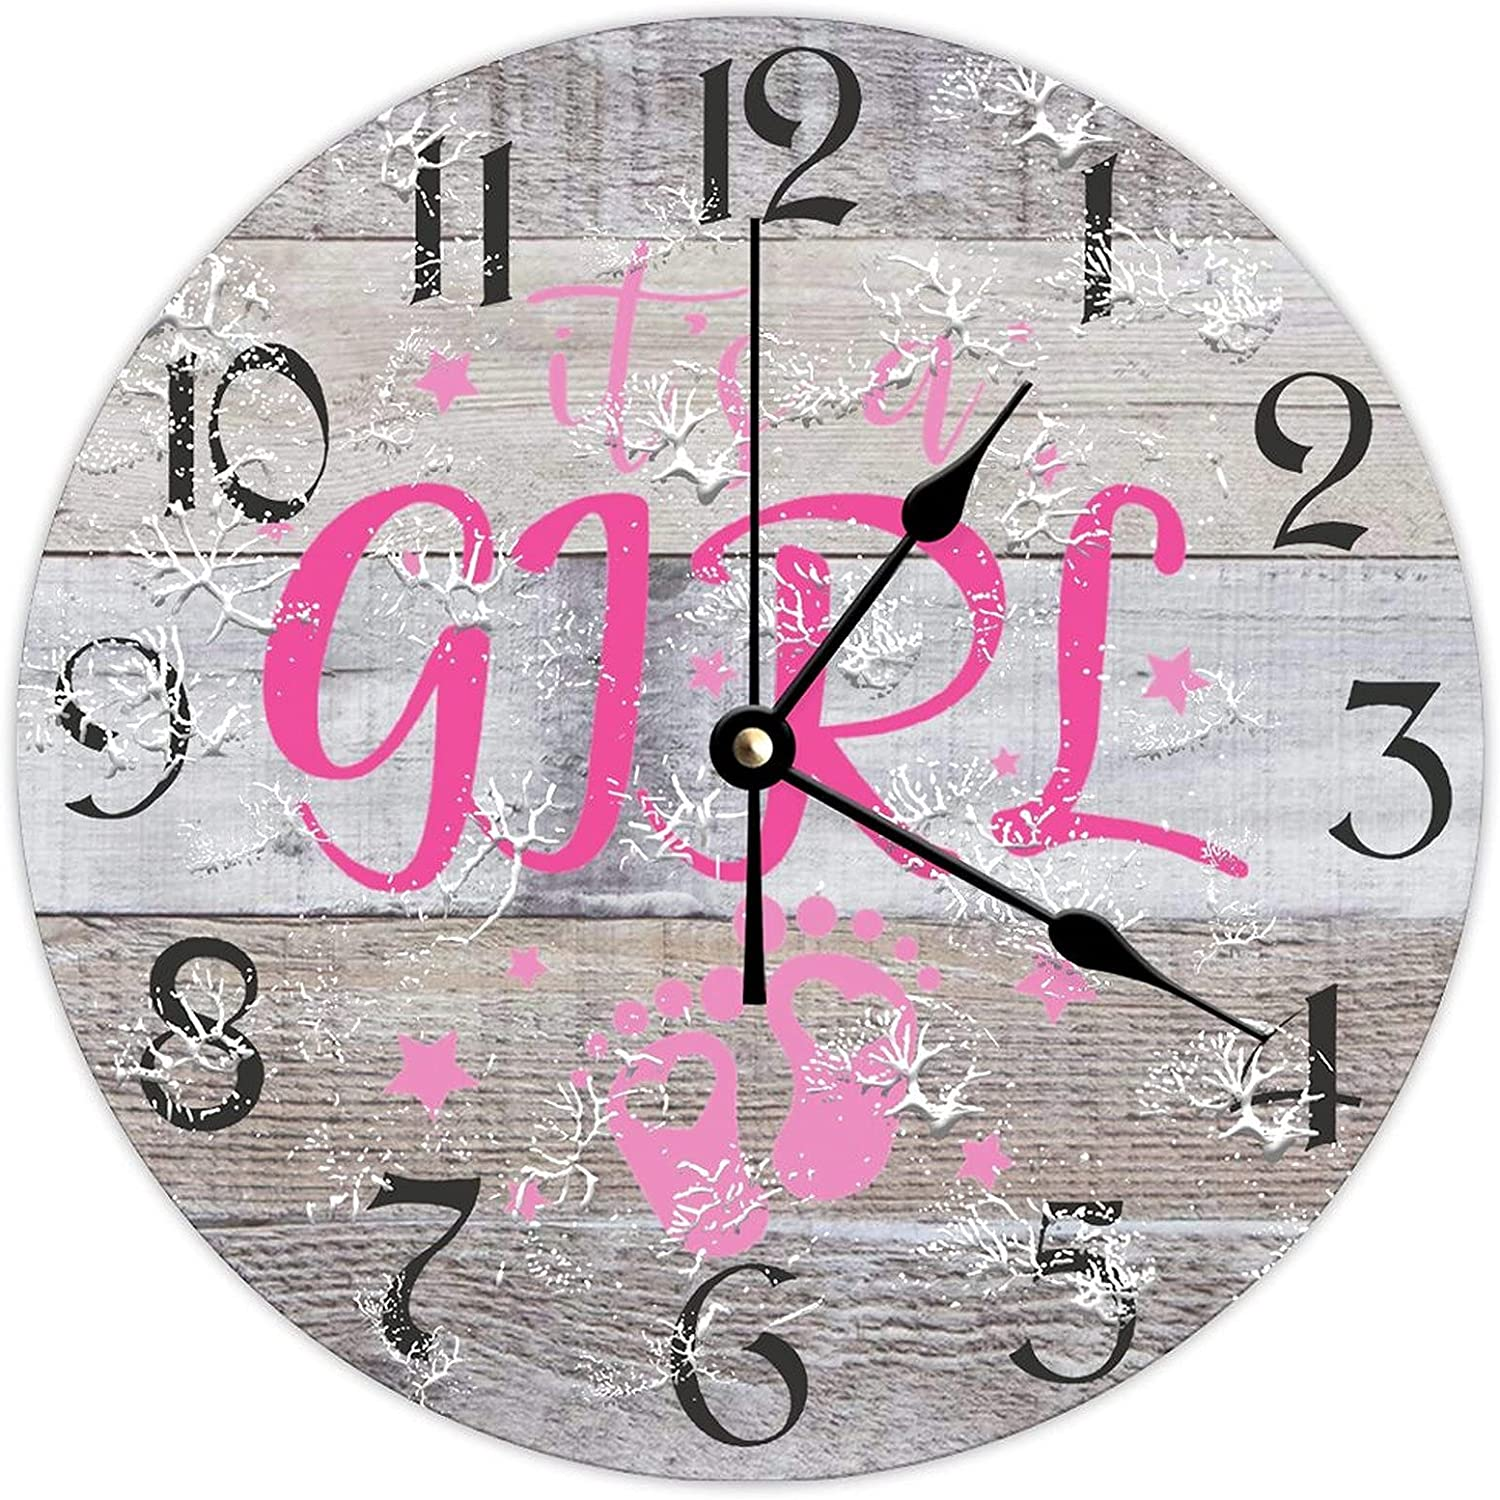 by Unbranded Wooden Clock Wall Decor 12 Girl Inch low-pricing It's A Seattle Mall